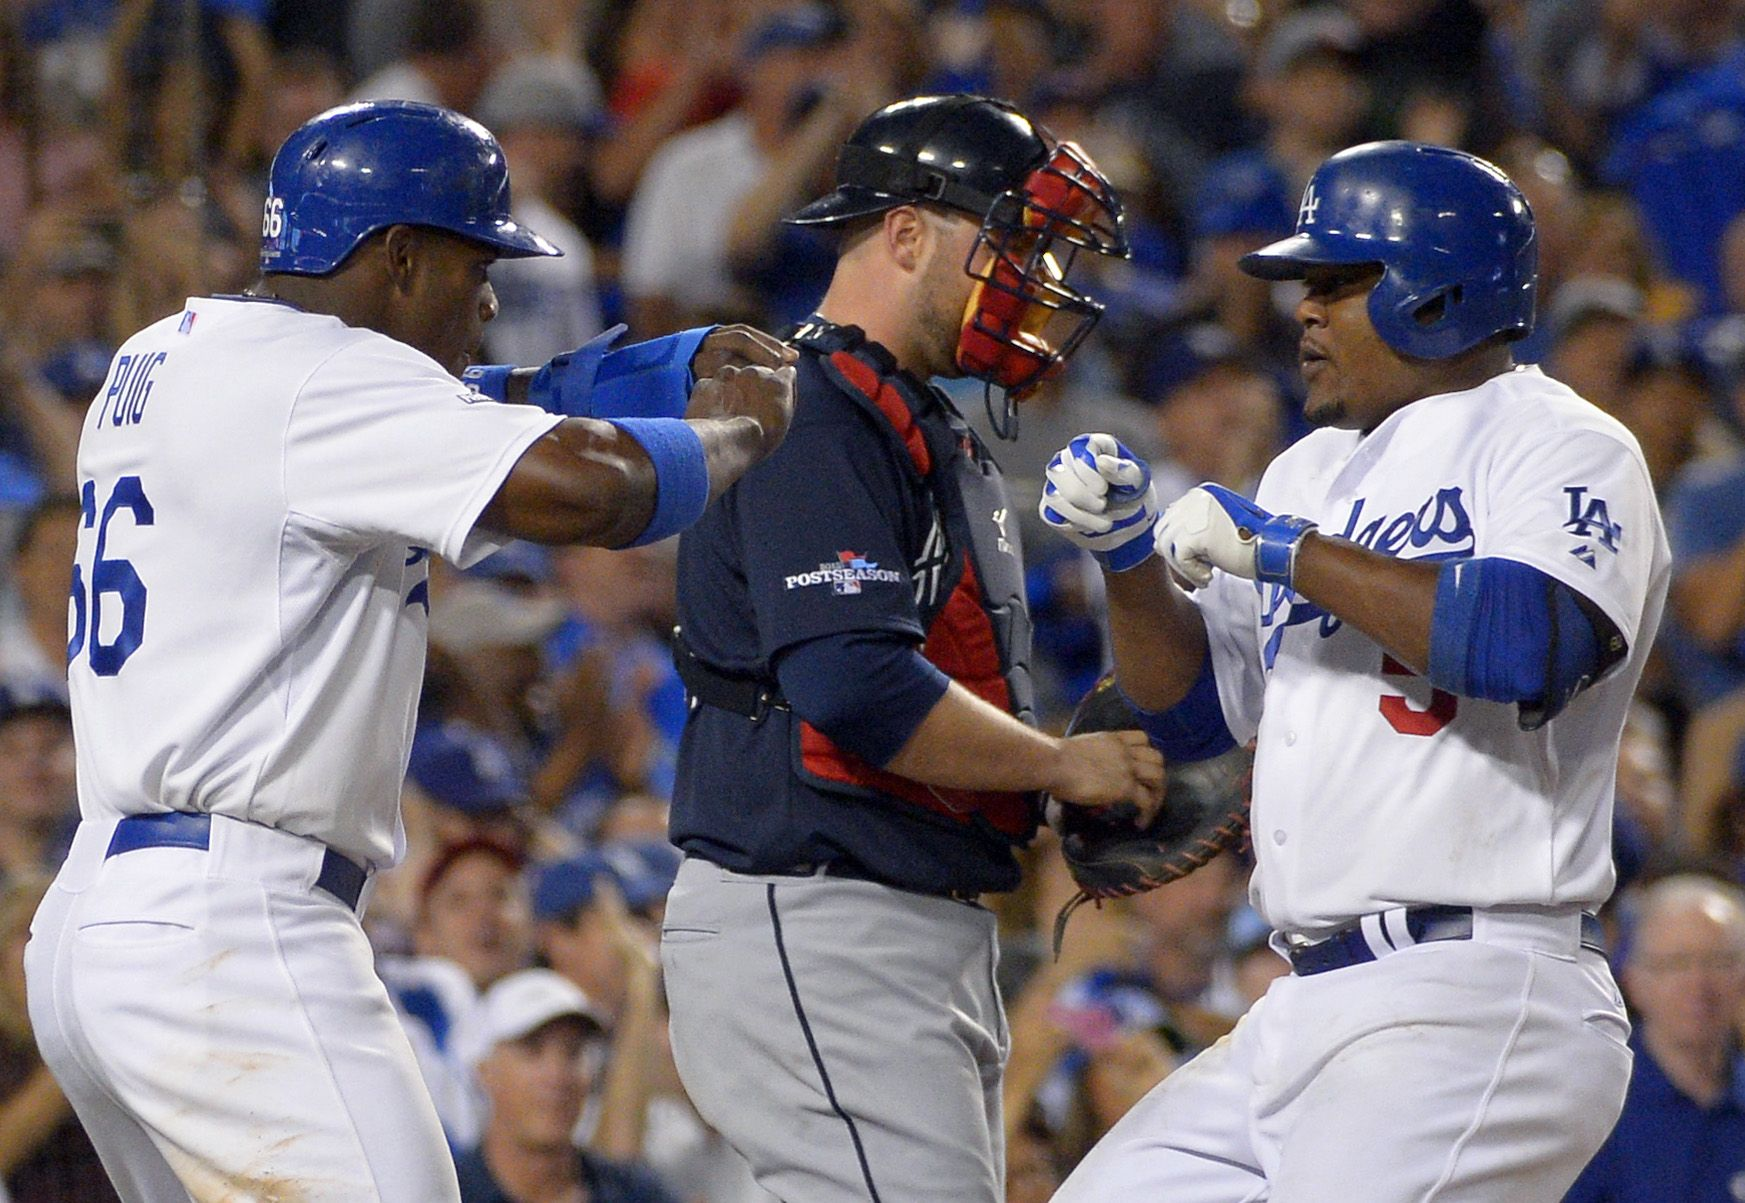 Los Angeles Dodgers Juan Uribe Right Greets Dodgers Yasiel Puig Left At The Plate Next To Atlanta Braves Catcher Brian Mccann Center After Uribe Hit A T